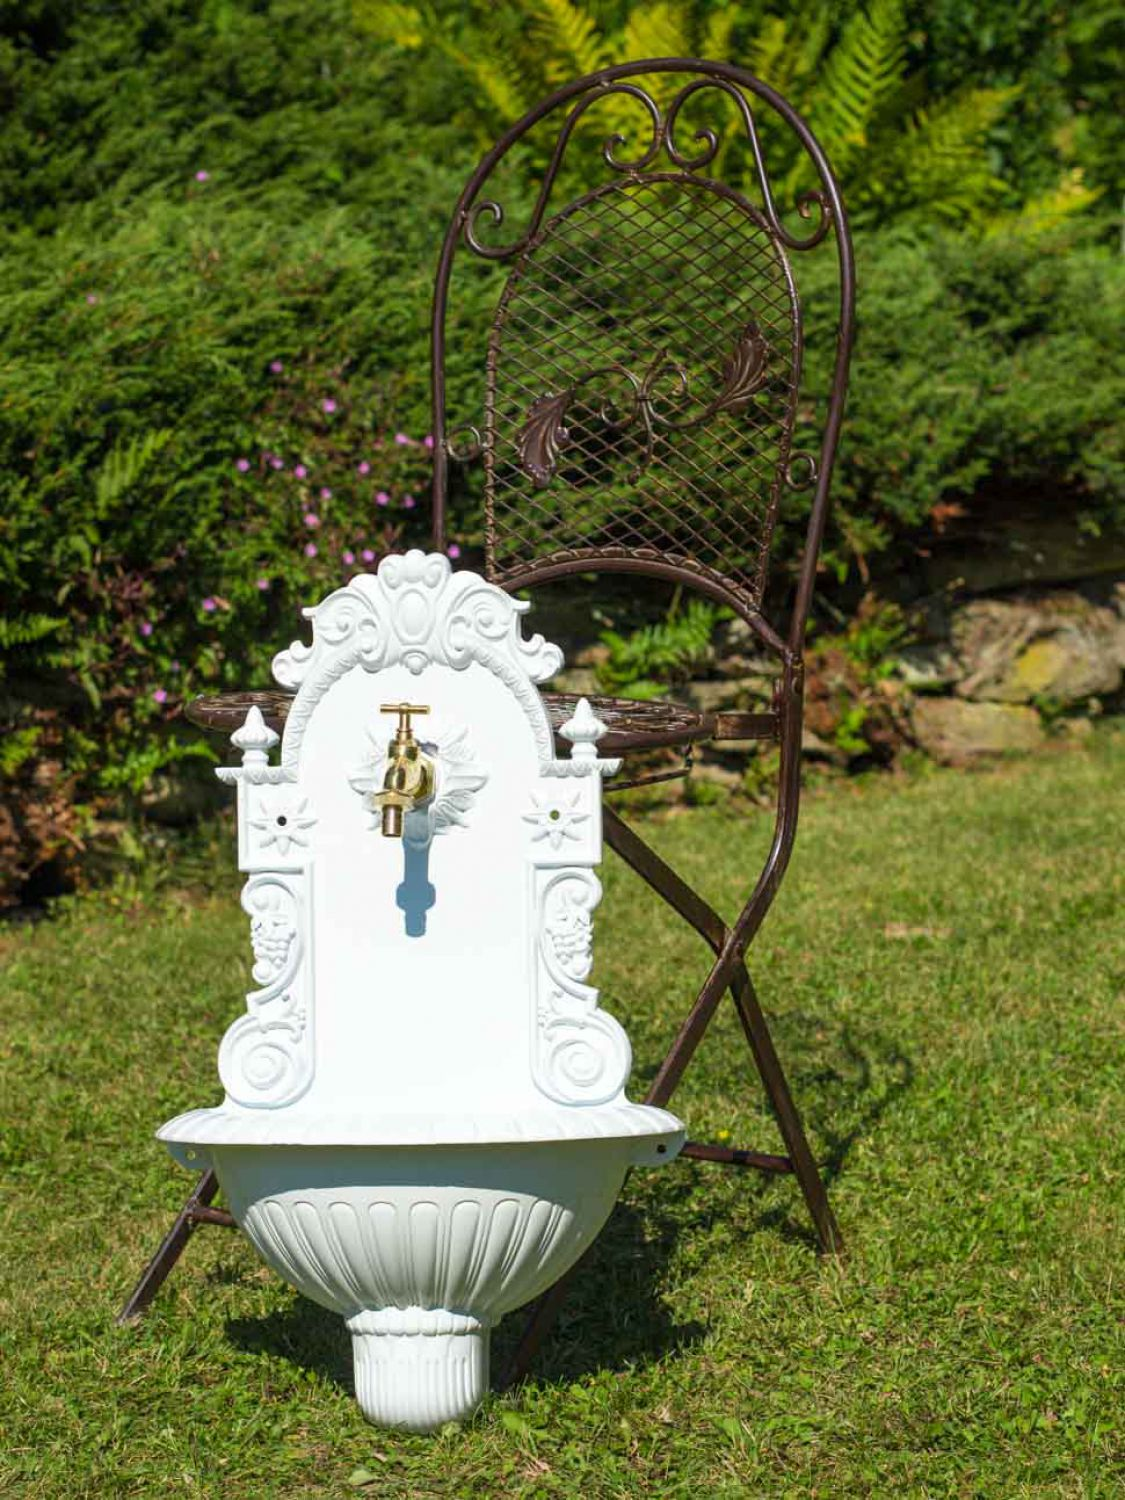 fontaine murale de jardin avec vasque style antique aluminium blanc ebay. Black Bedroom Furniture Sets. Home Design Ideas